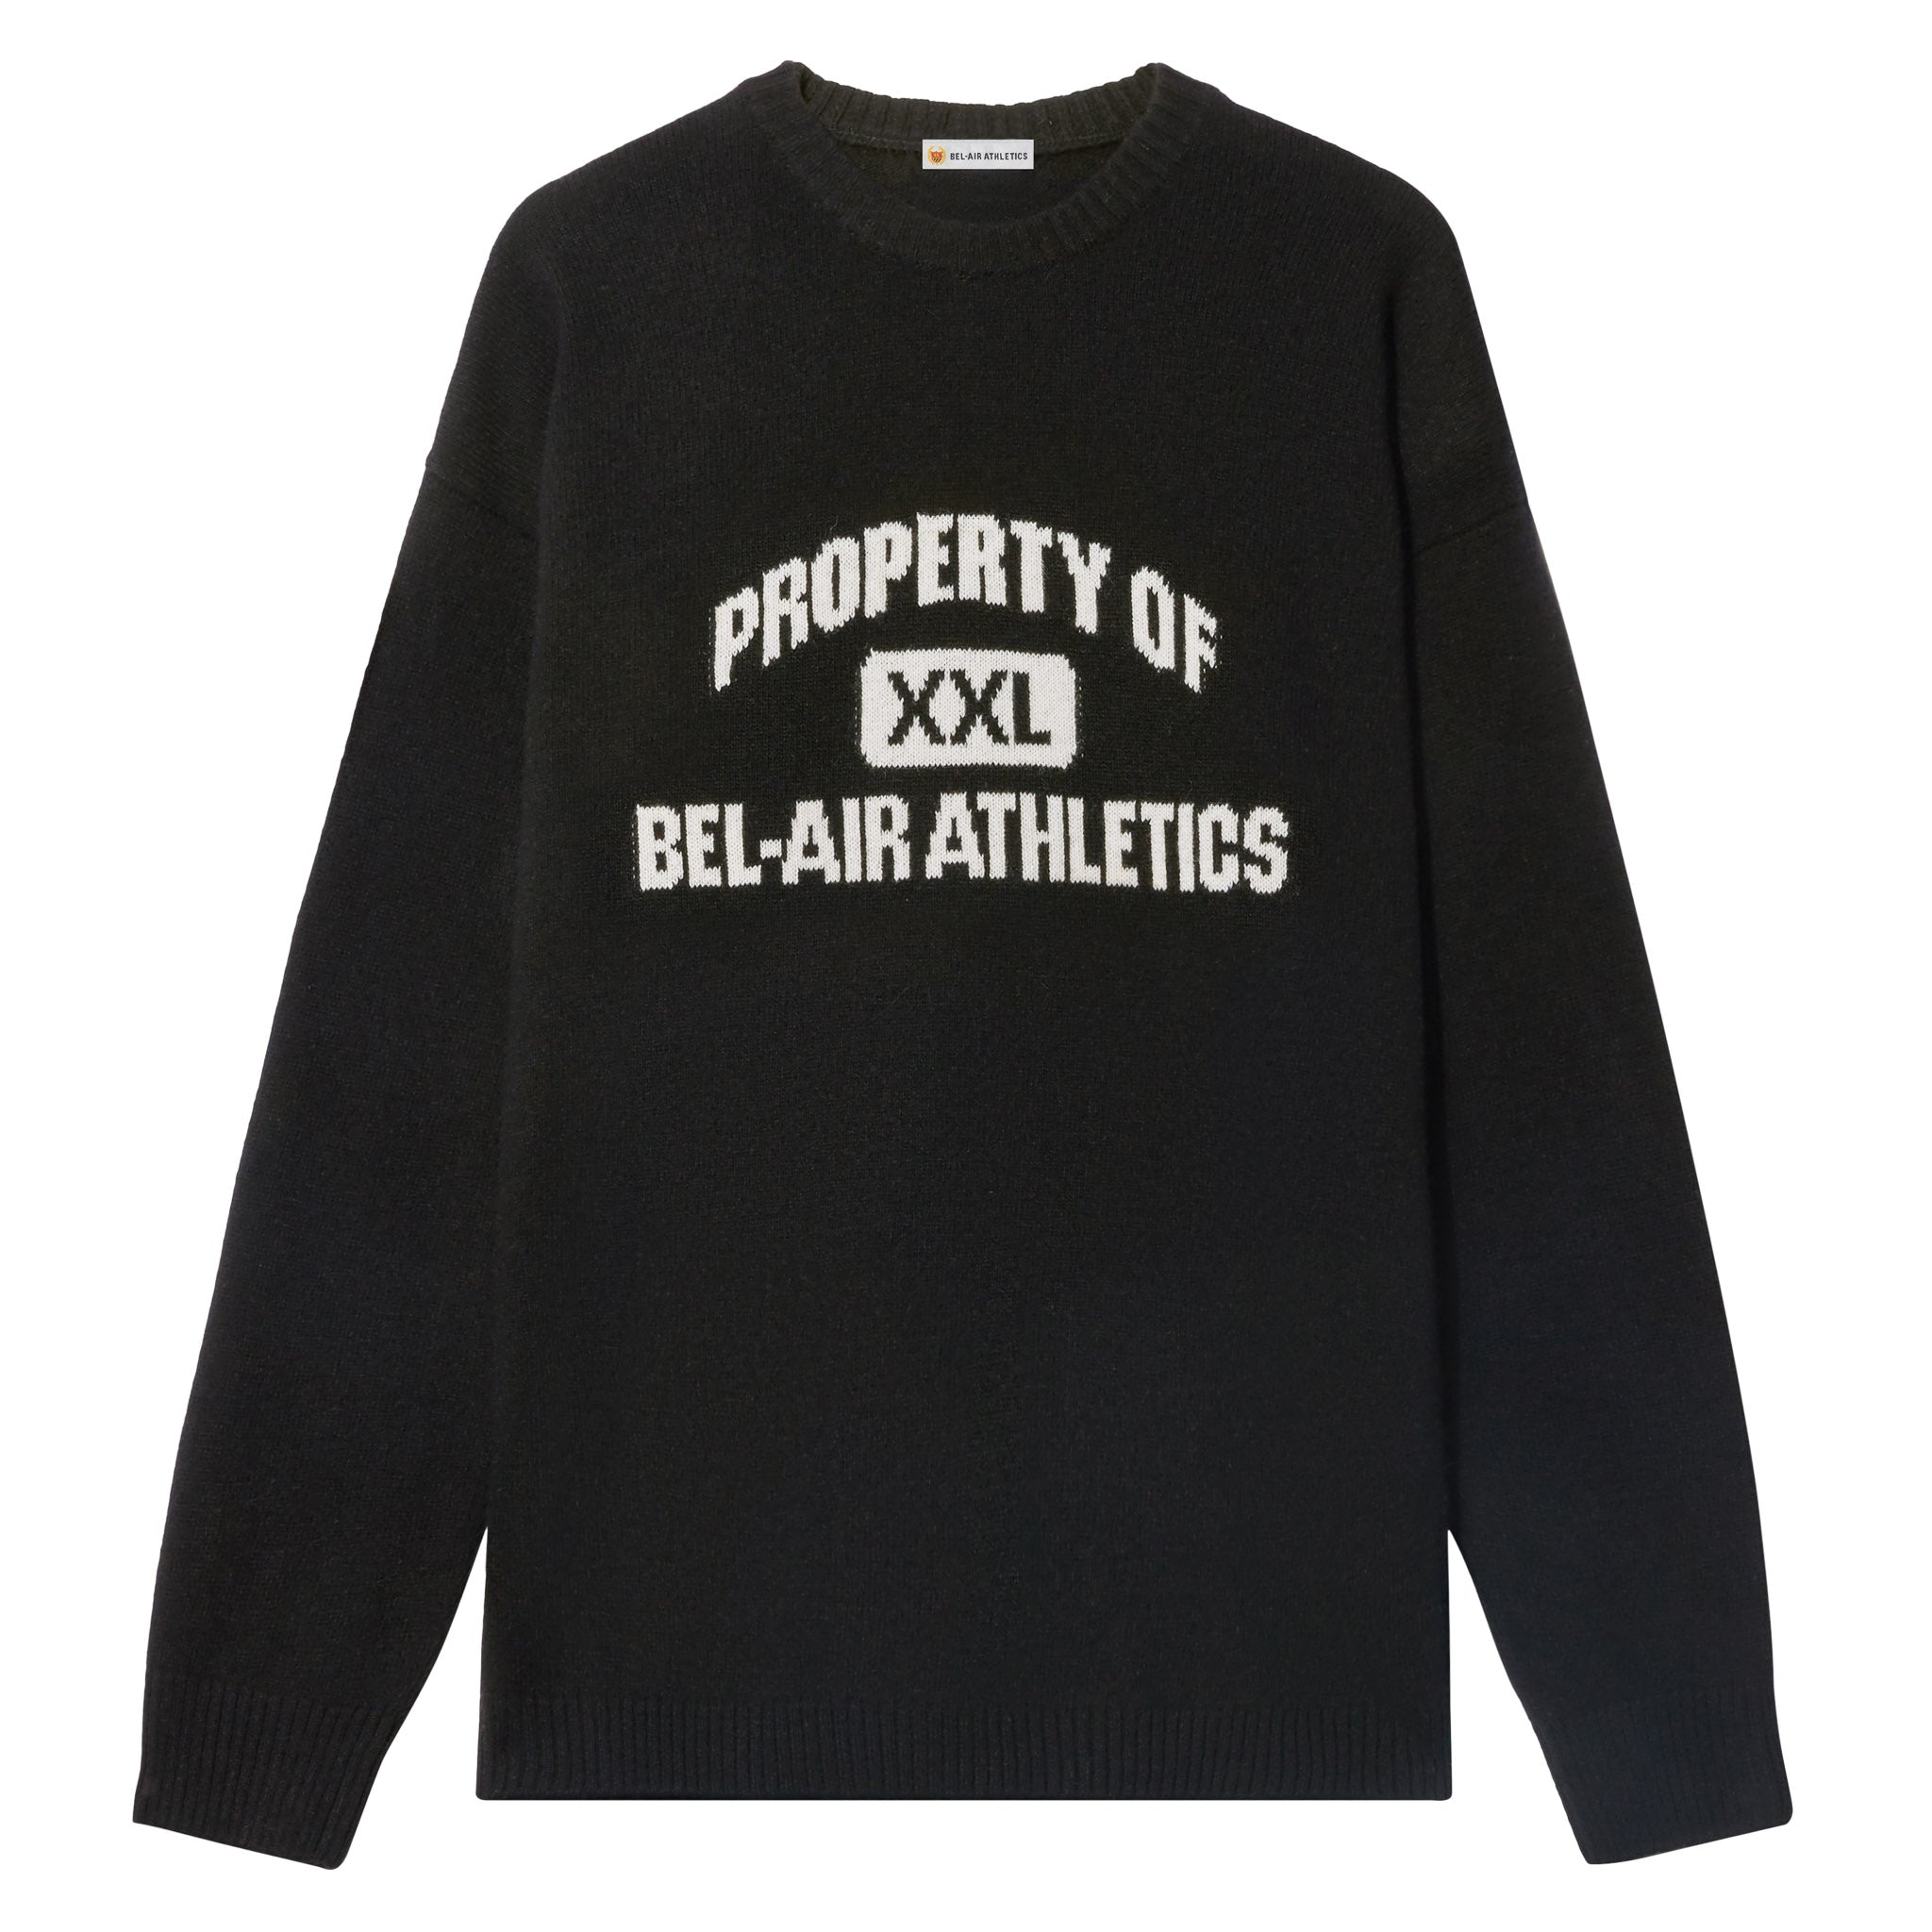 Property of Intarsia Knit - Vintage Black with Chalk White Intarsia